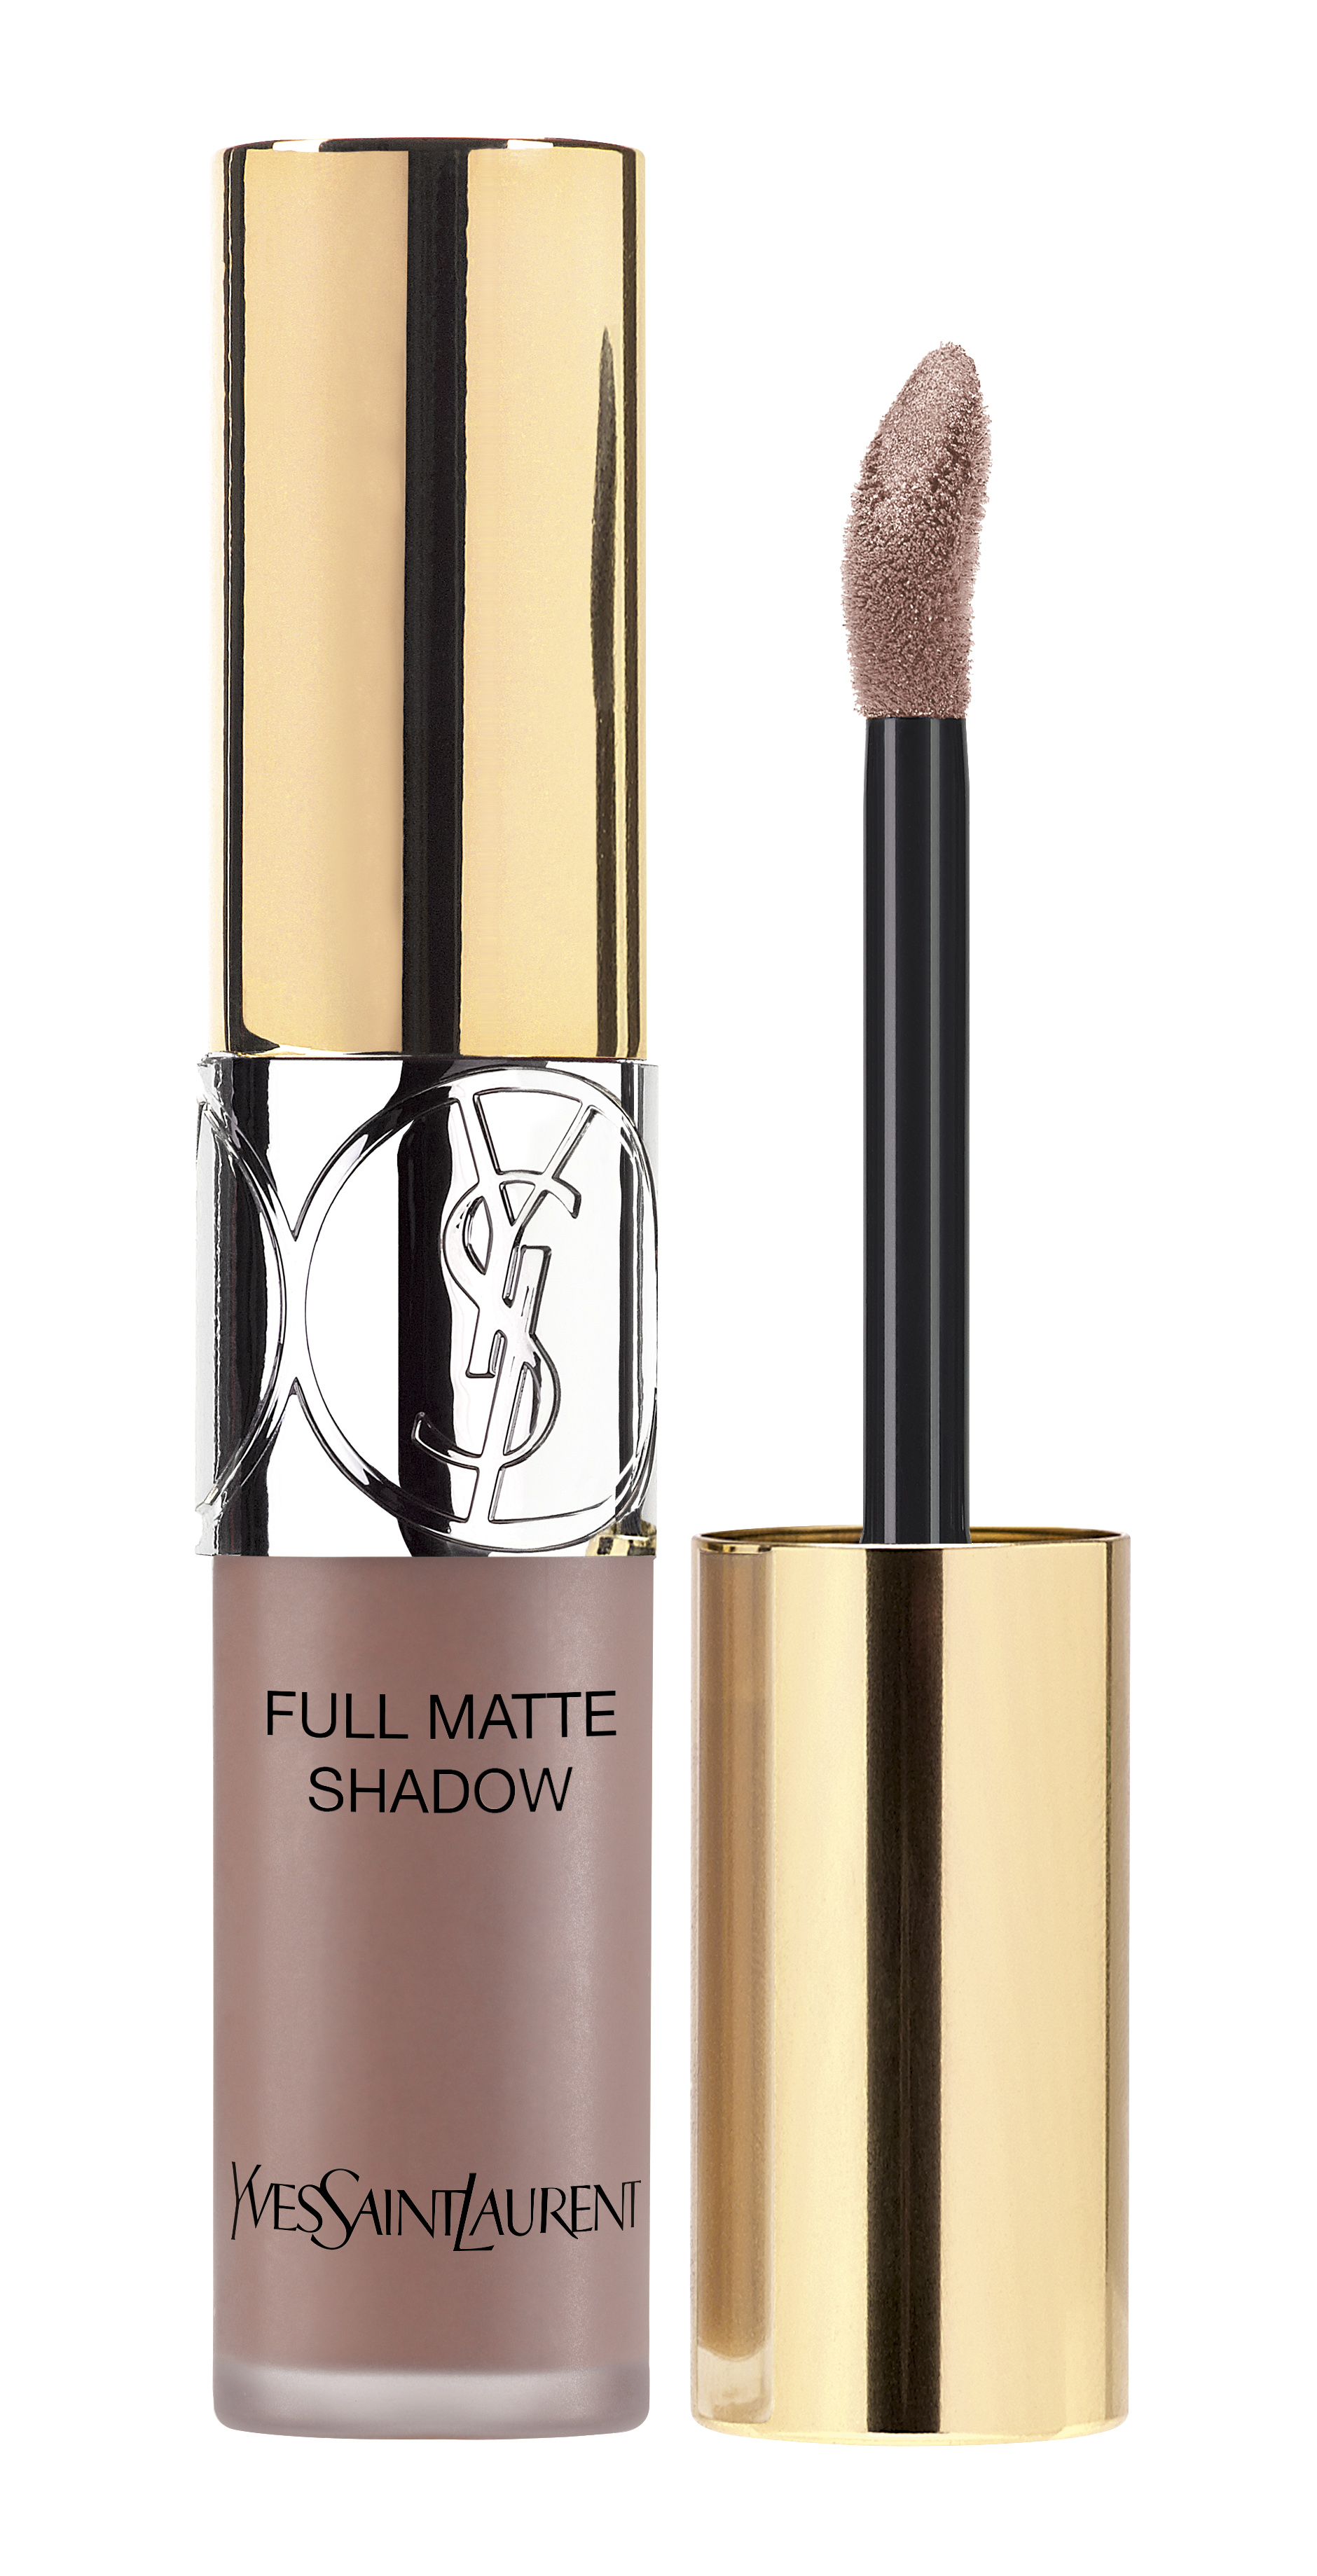 Full Matte Shadow 3